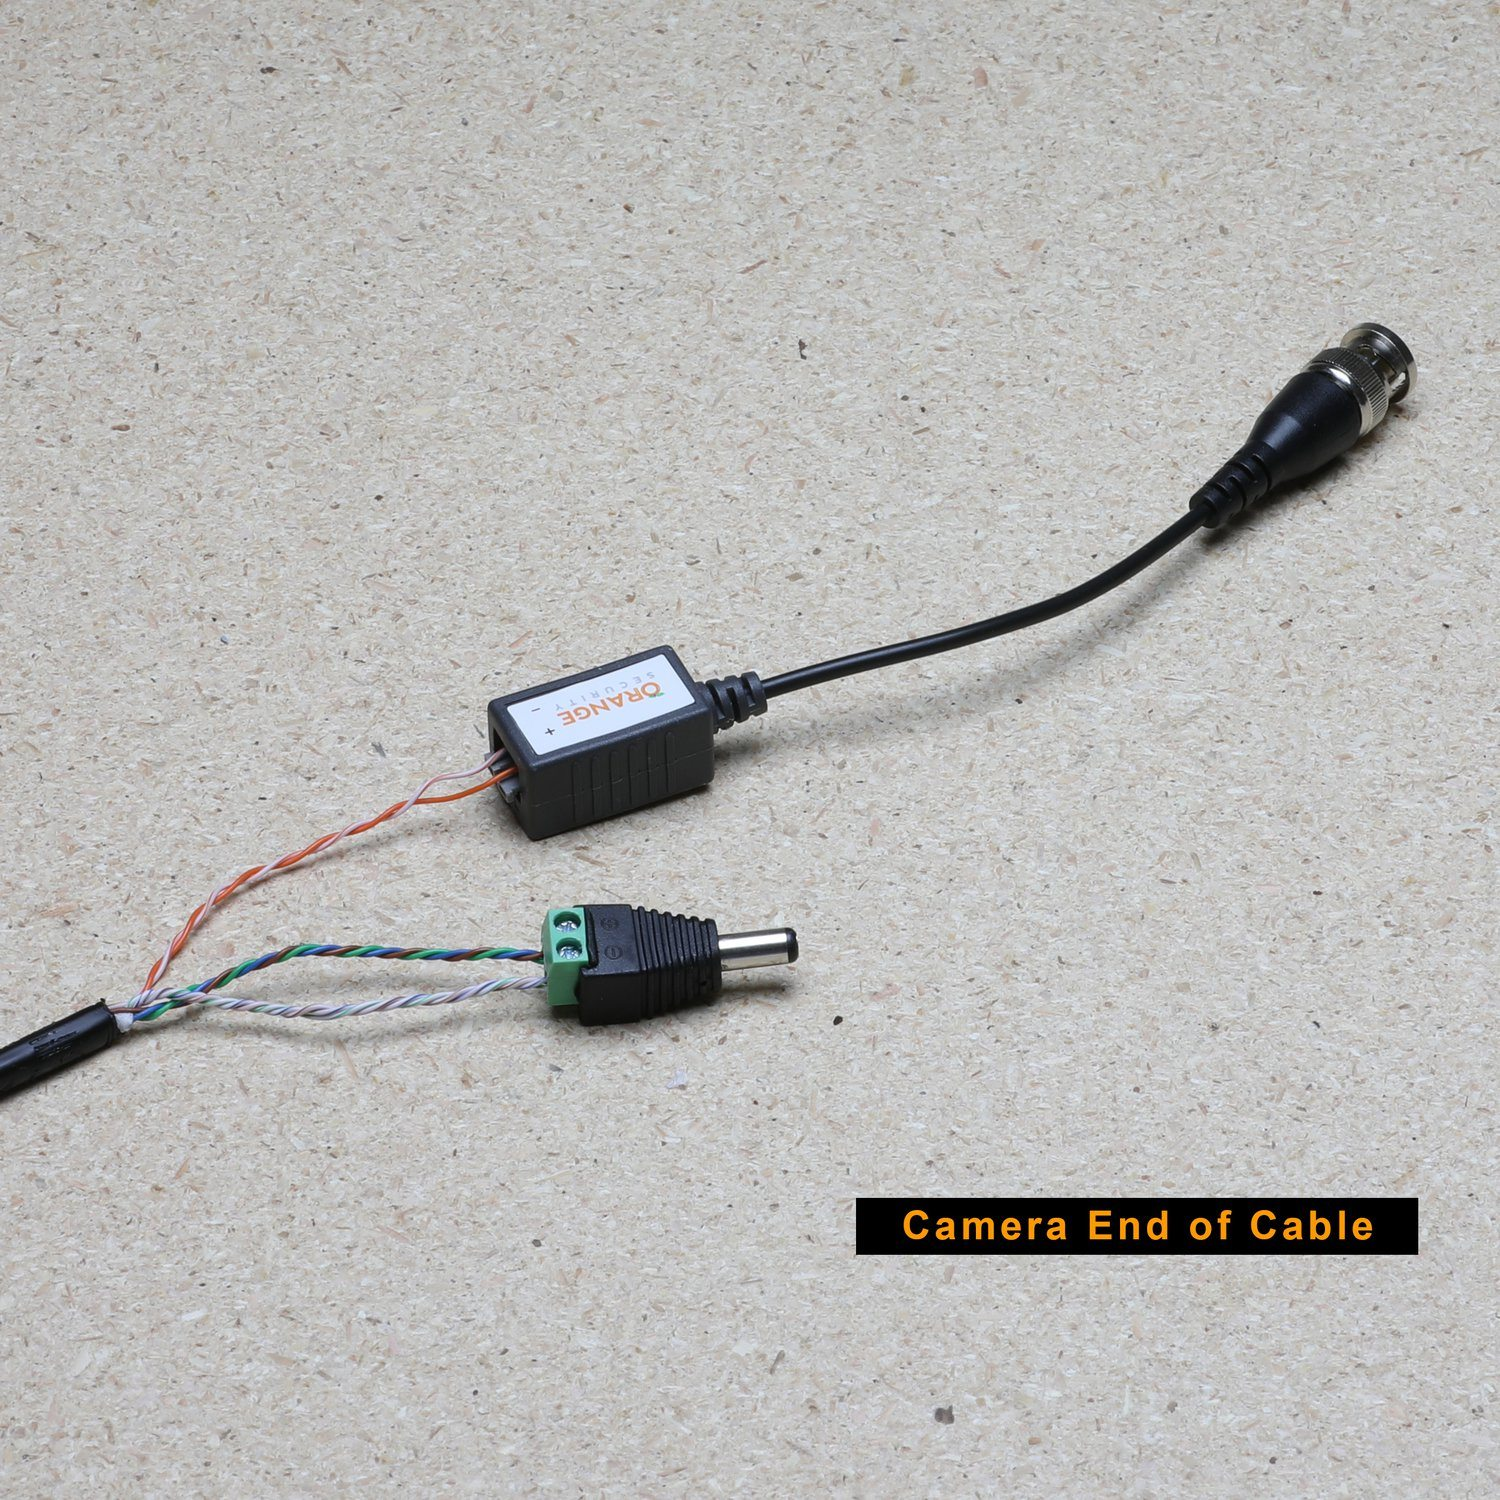 hight resolution of cat5e wiring guide connections fitted at the camera end of the cable